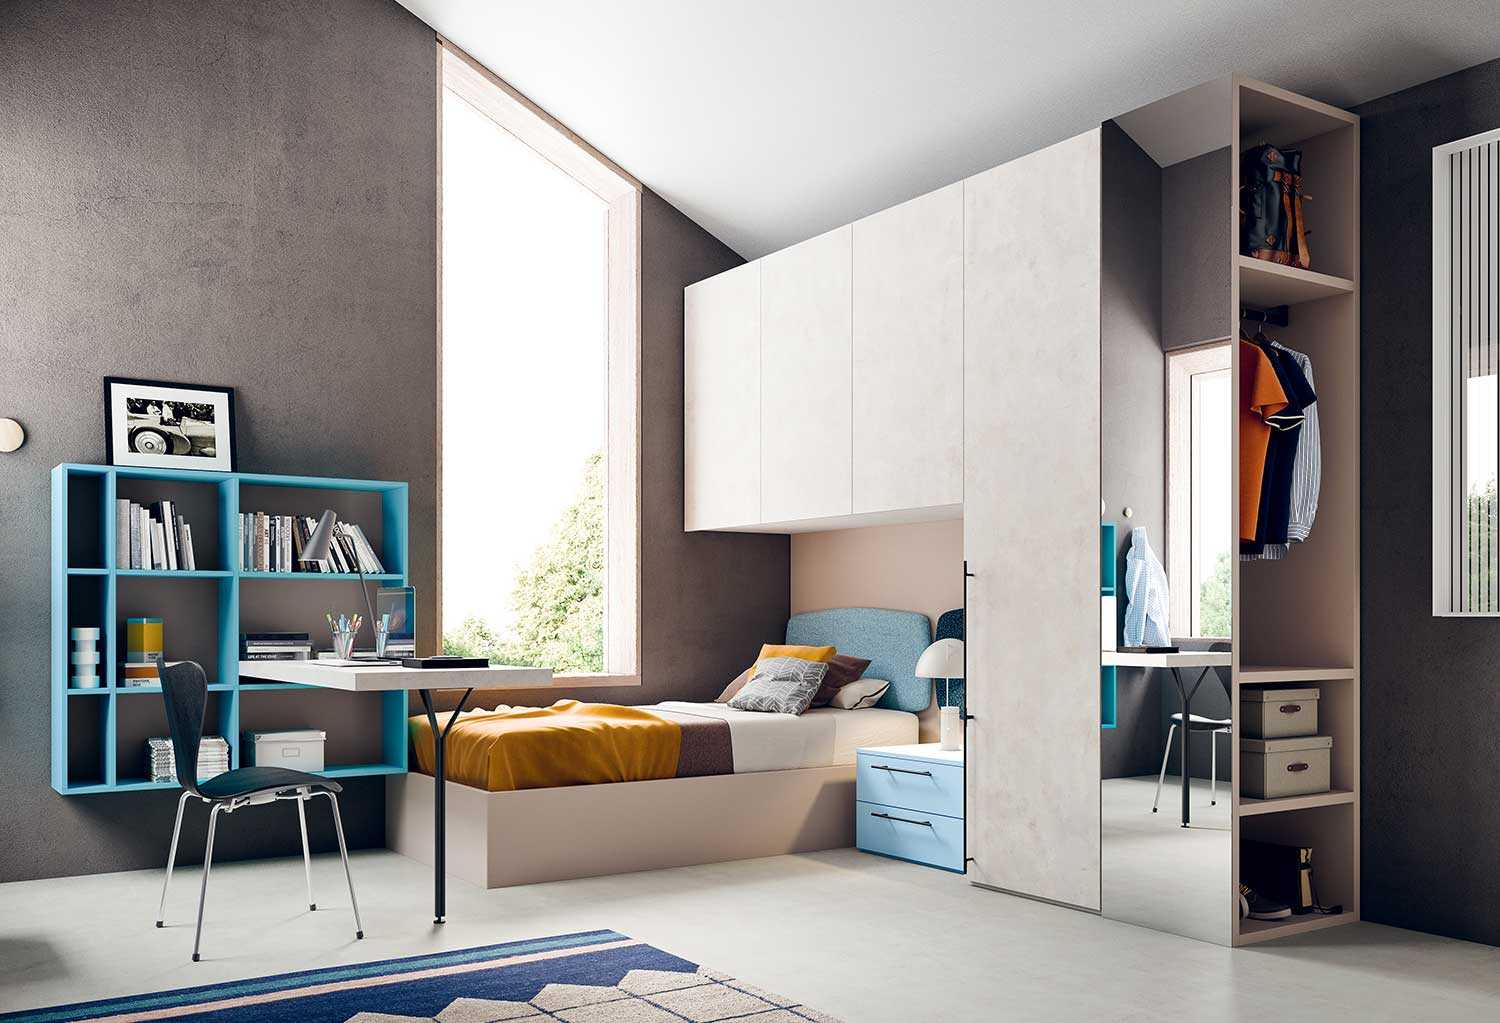 Letto Singolo Con Comodino.Boys Bedroom Set With Desk And Bookshelf Start P17 Clever